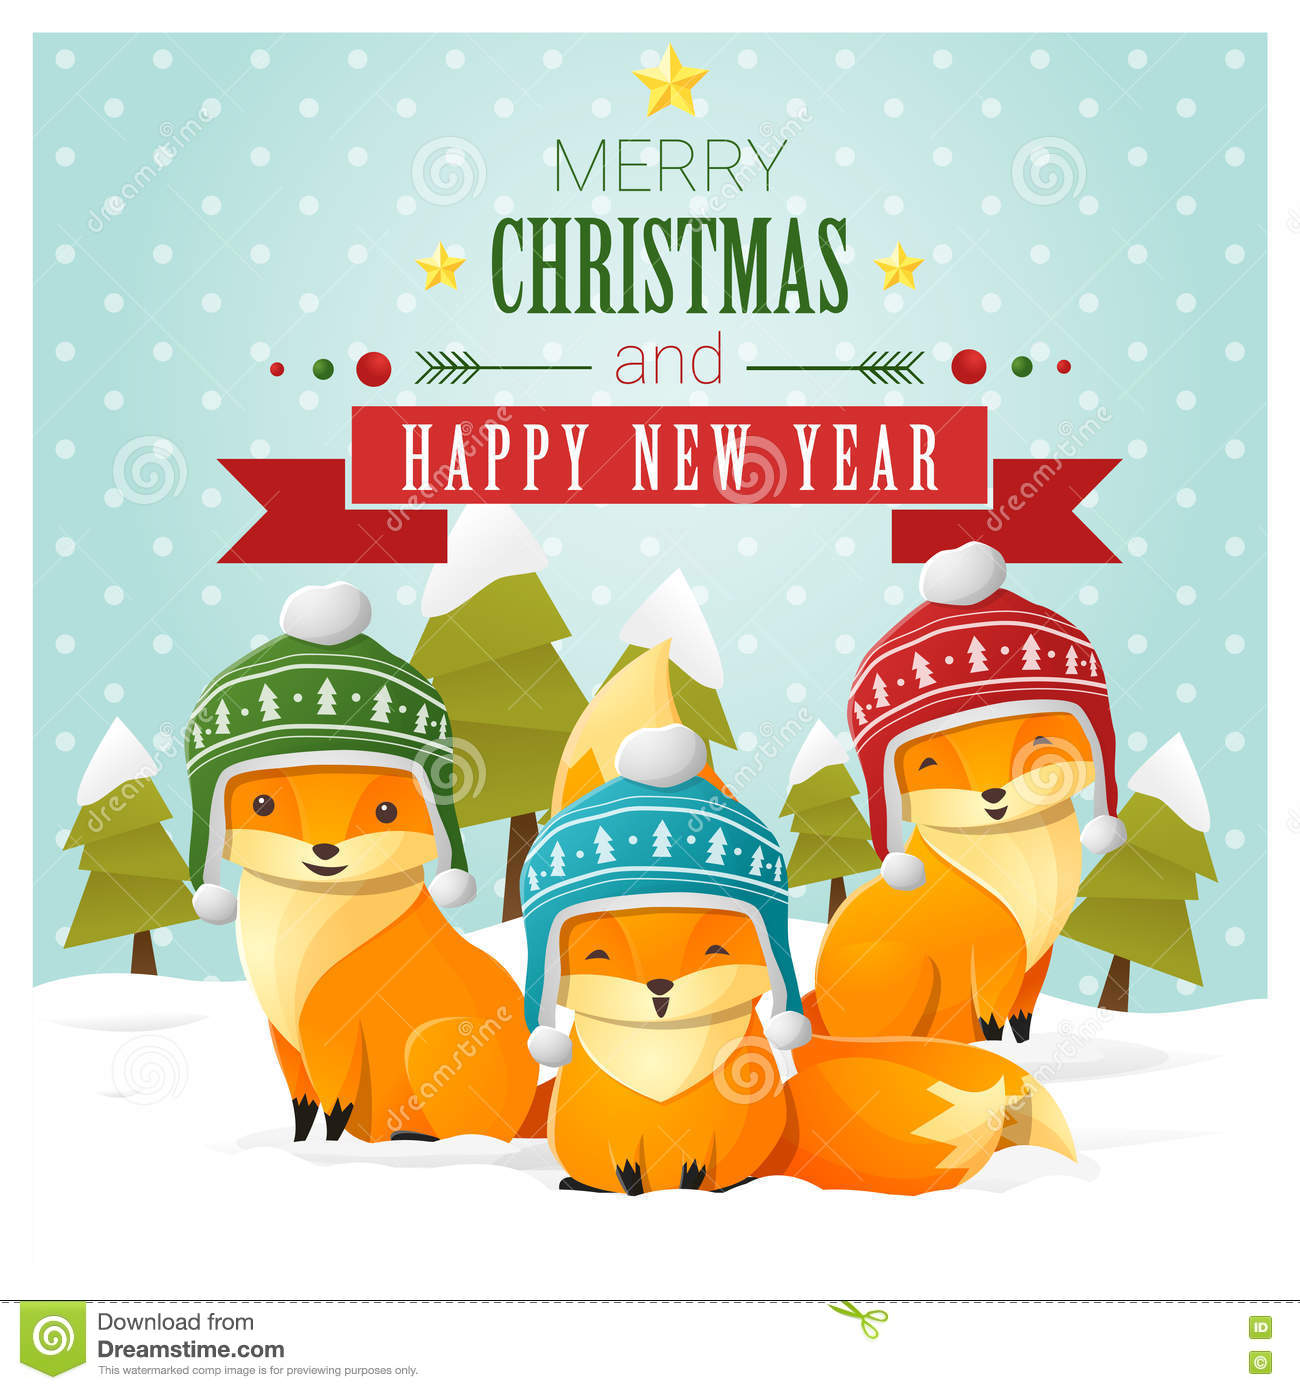 merry christmas and happy new year greeting card with fox family - Merry Christmas To The Family